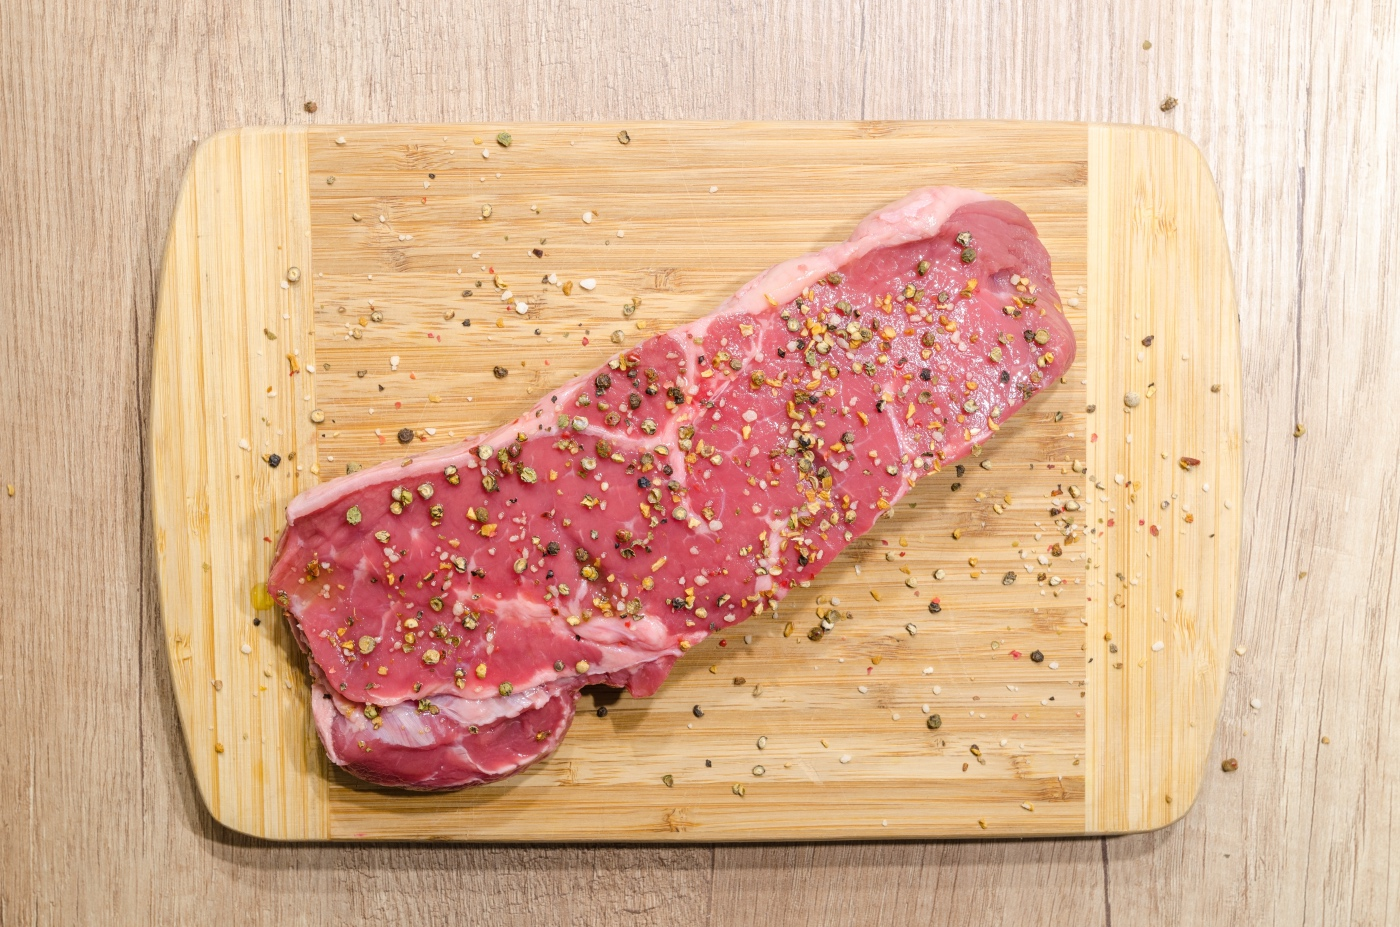 simple layer of steak marinade with garlic recipe